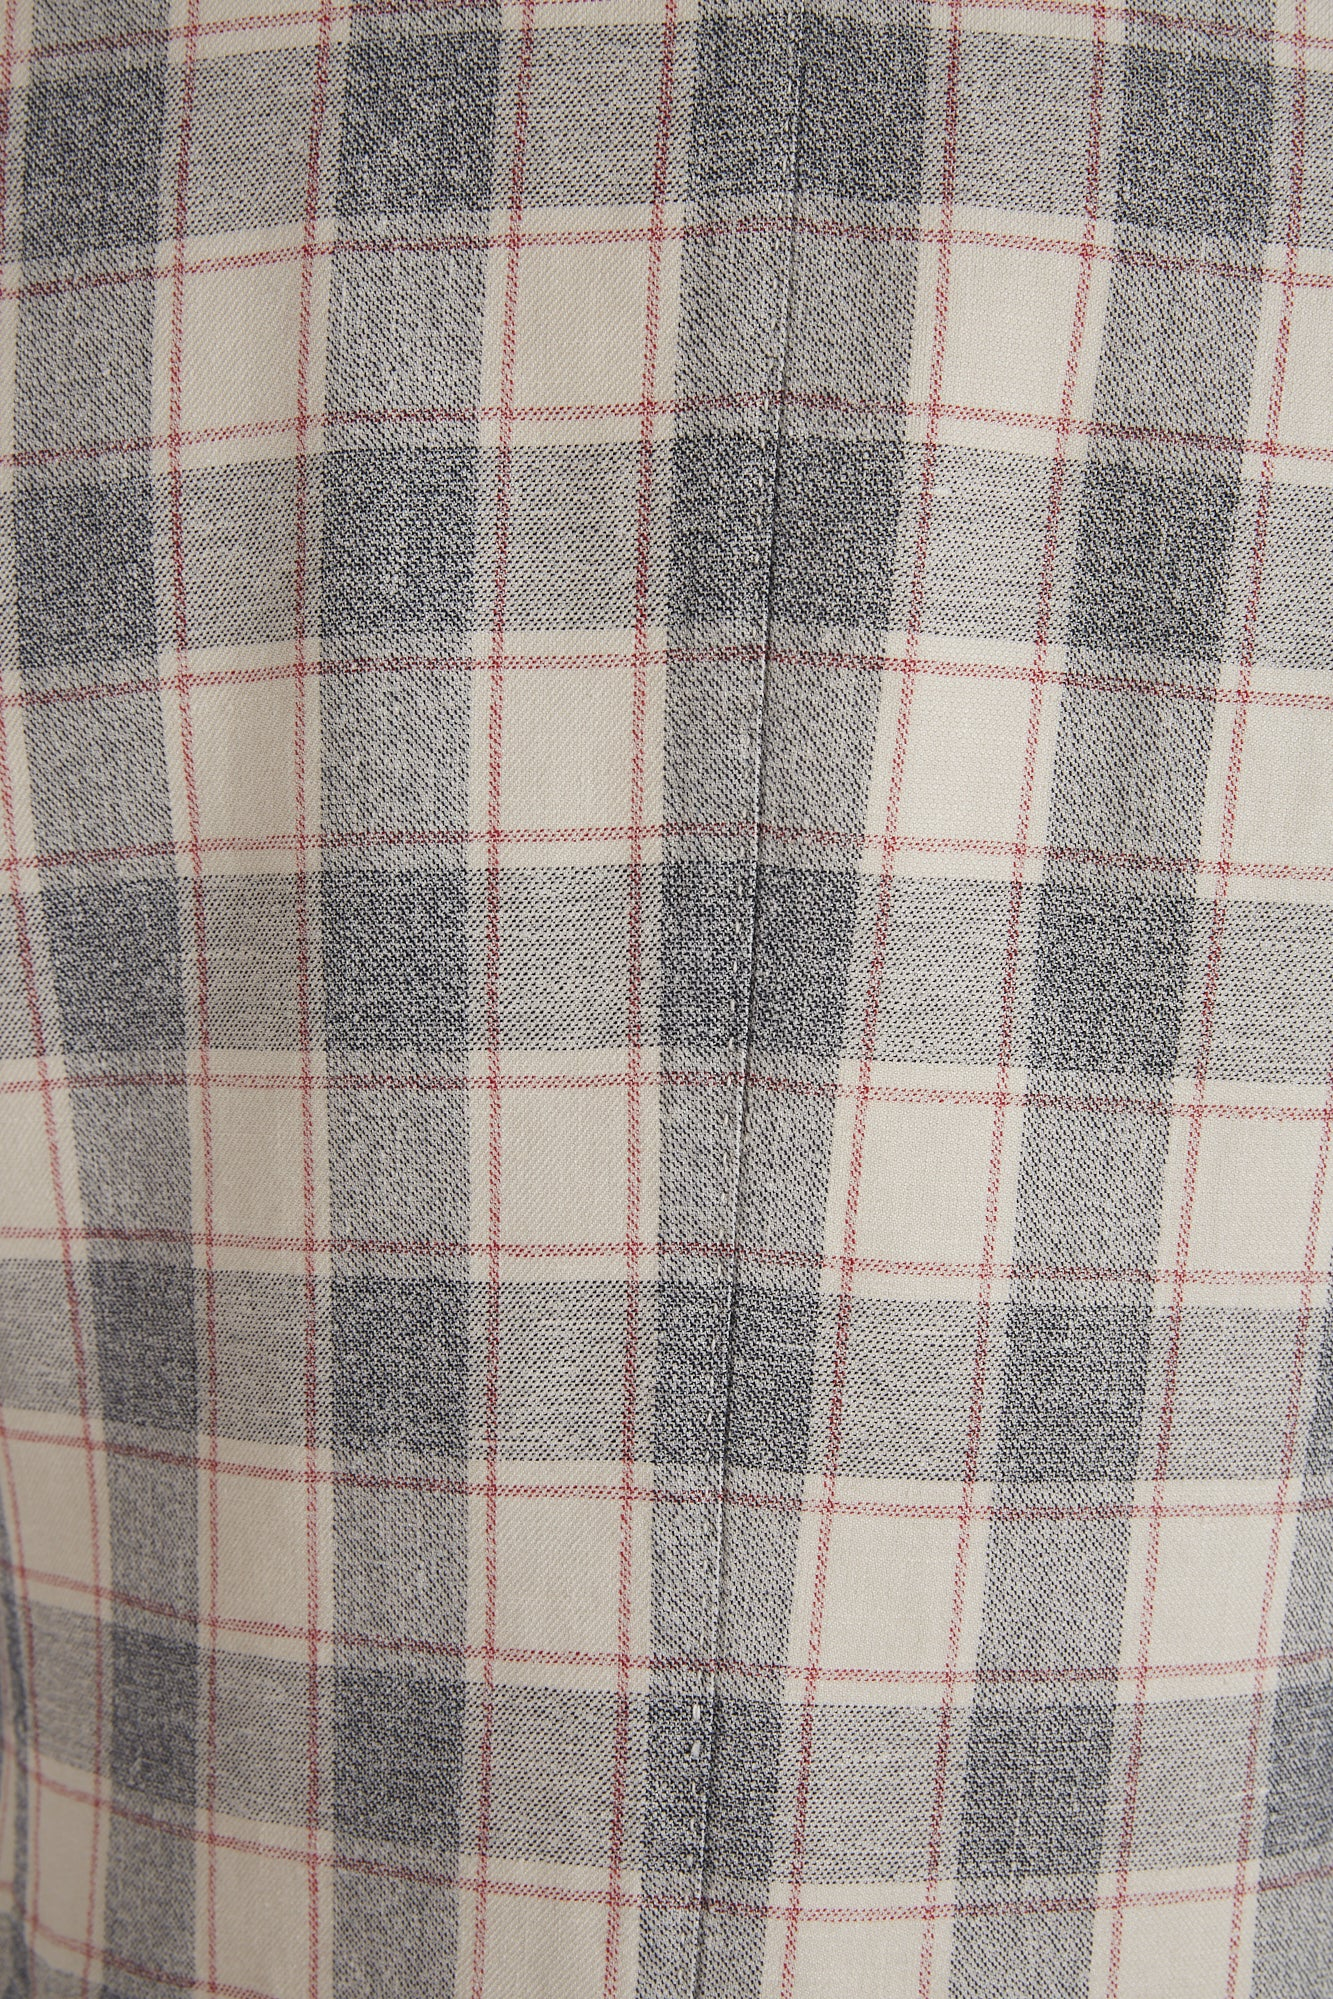 L.B.M. 1911 Off-White Glen Check Sport Jacket - Sport Jackets - L.B.M. 1911 - LALONDE's